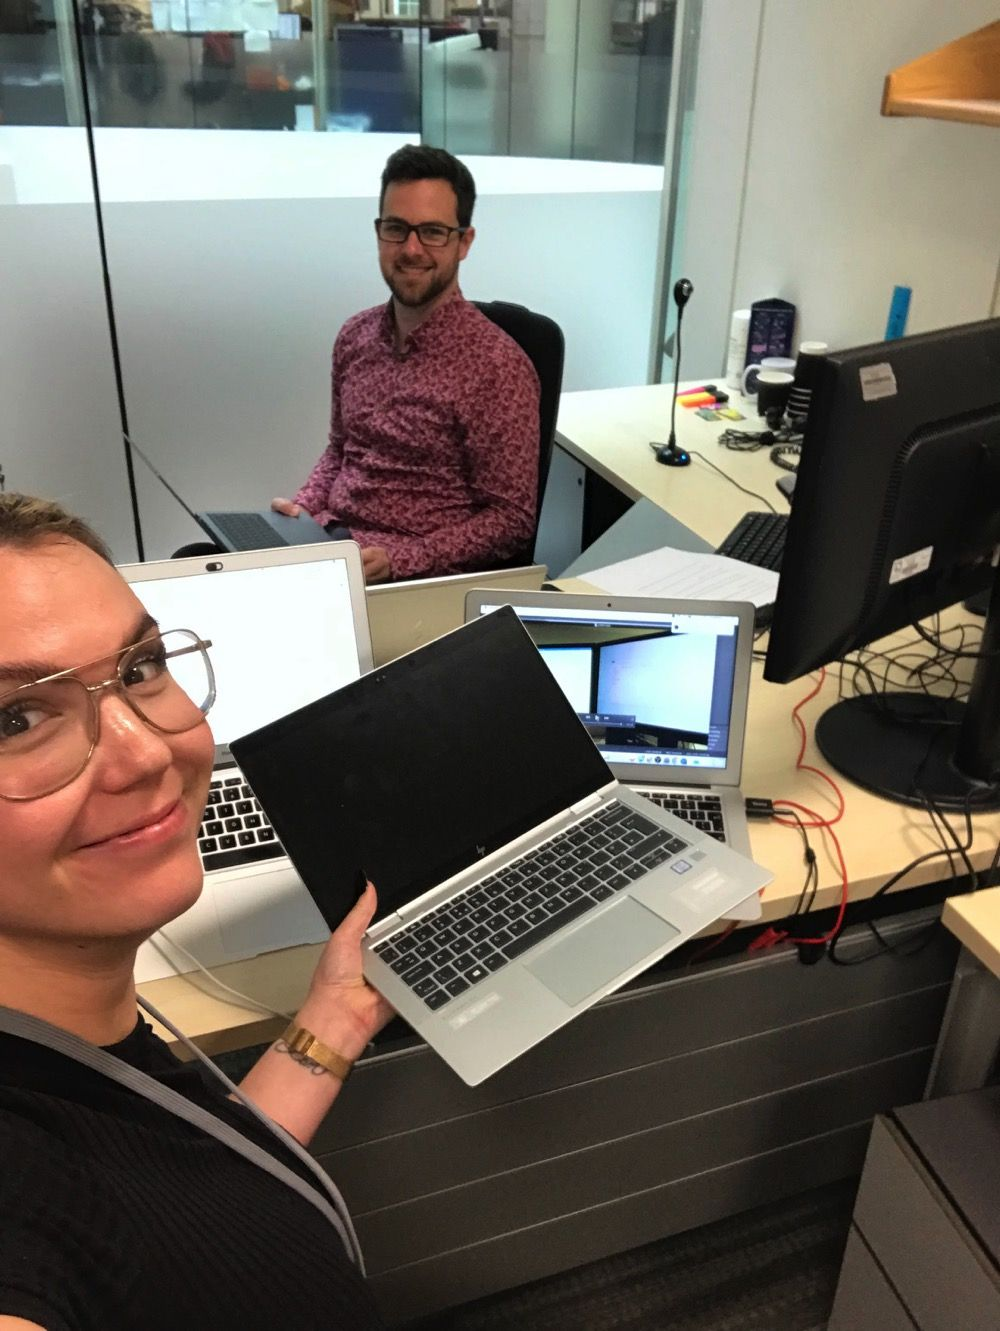 Harry and Urska on site at the clients offices wielding laptops